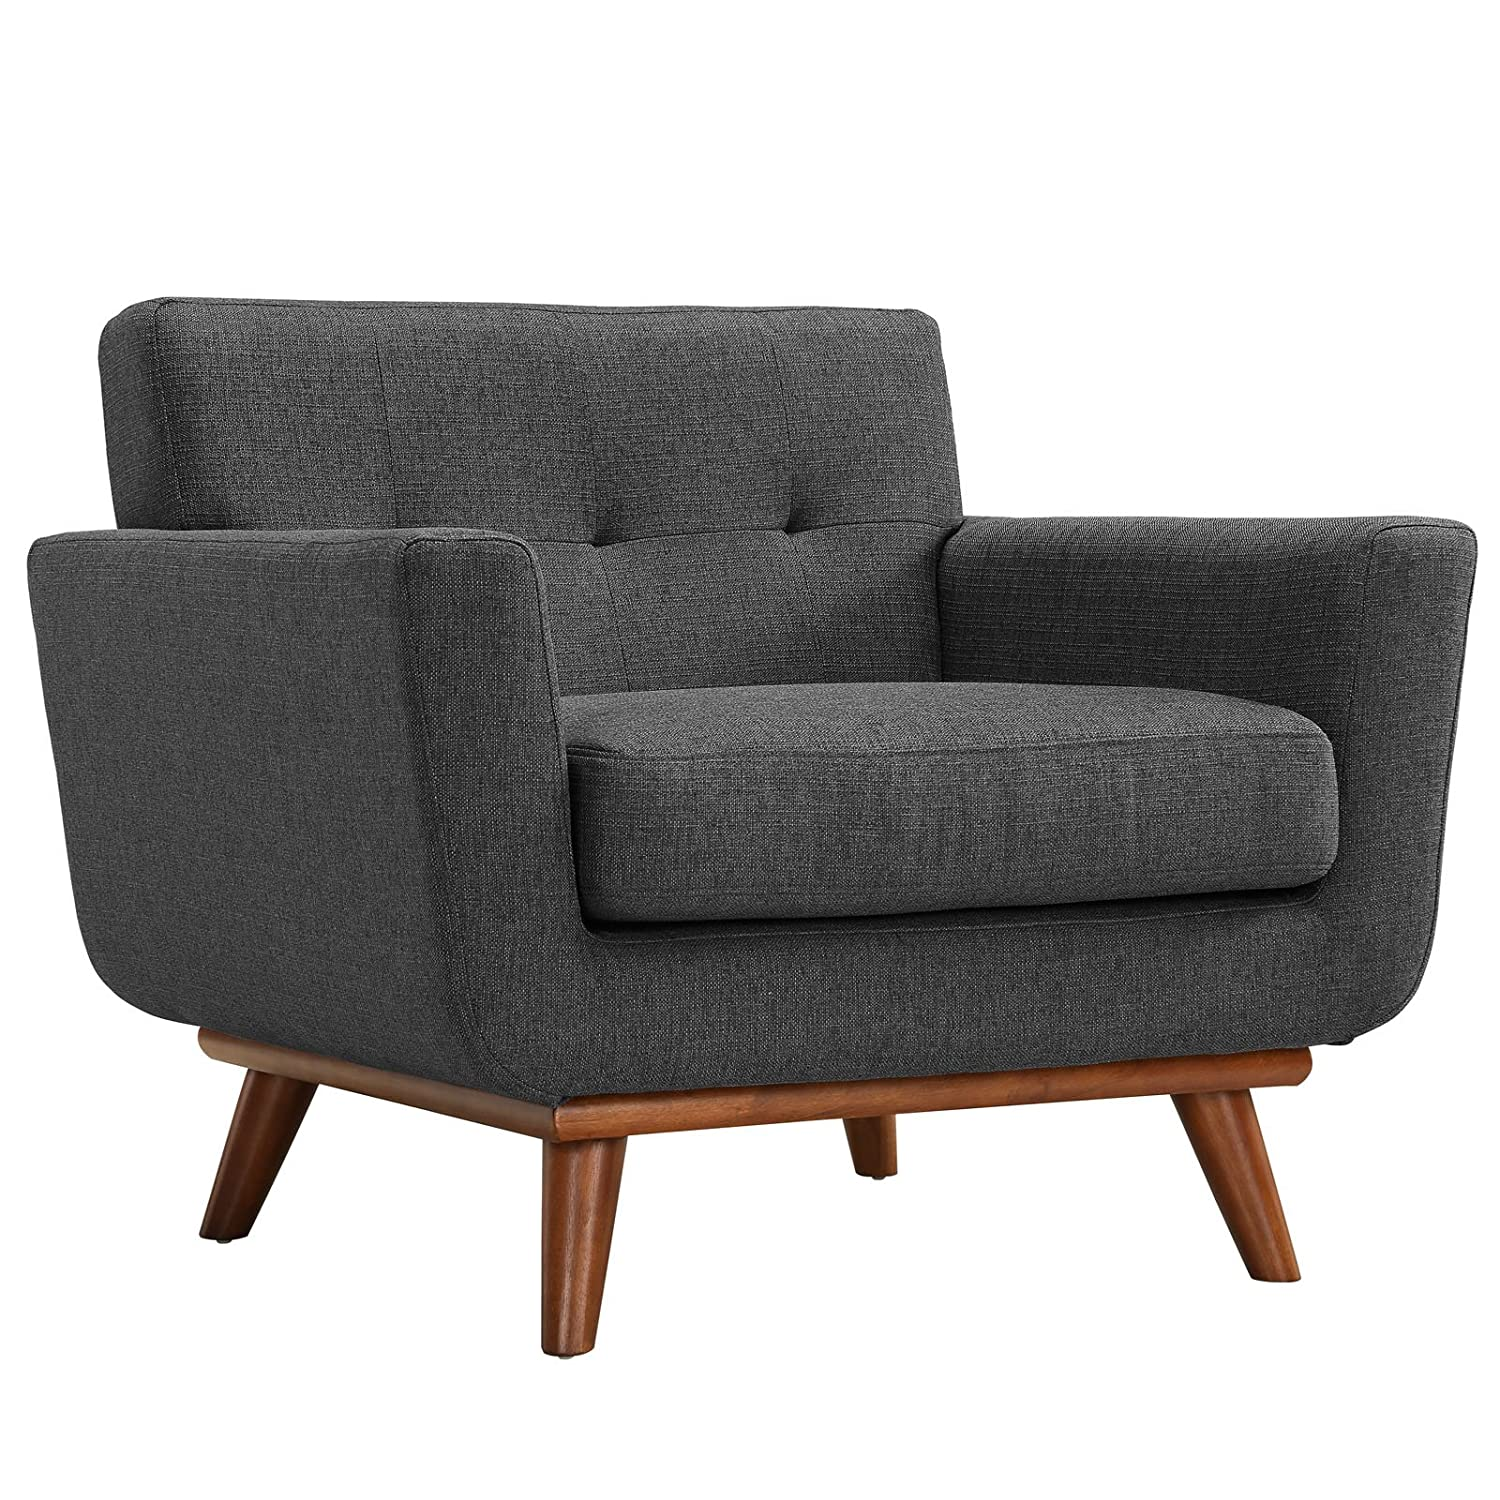 modern arm chair. Amazon.com: Modway Engage Mid-Century Modern Upholstered Fabric Armchair In Gray: Kitchen \u0026 Dining Arm Chair A